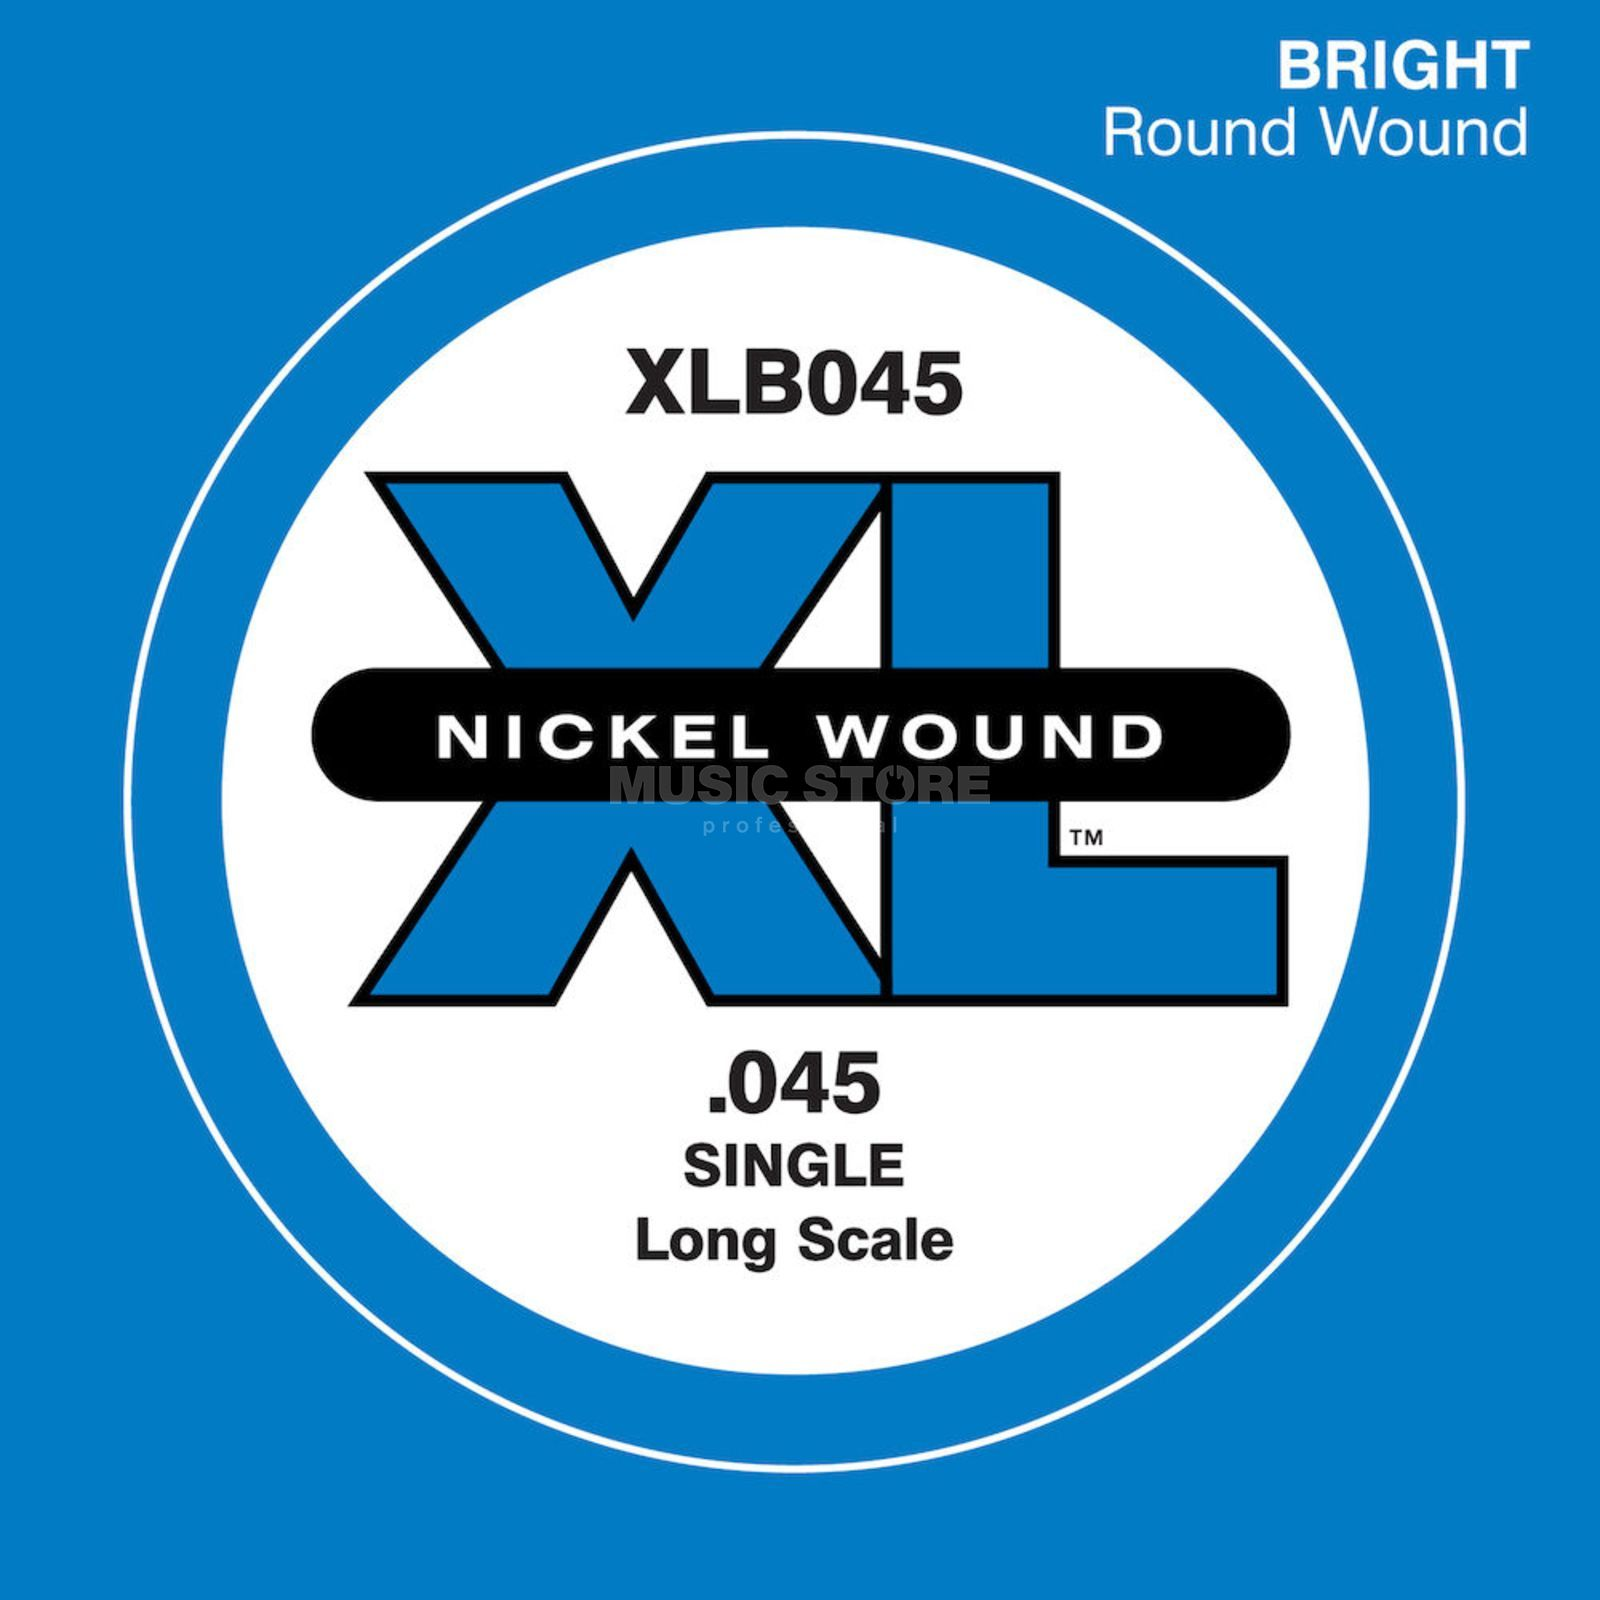 D'Addario Bass Single String XLB045 XL Nickel Wound Product Image